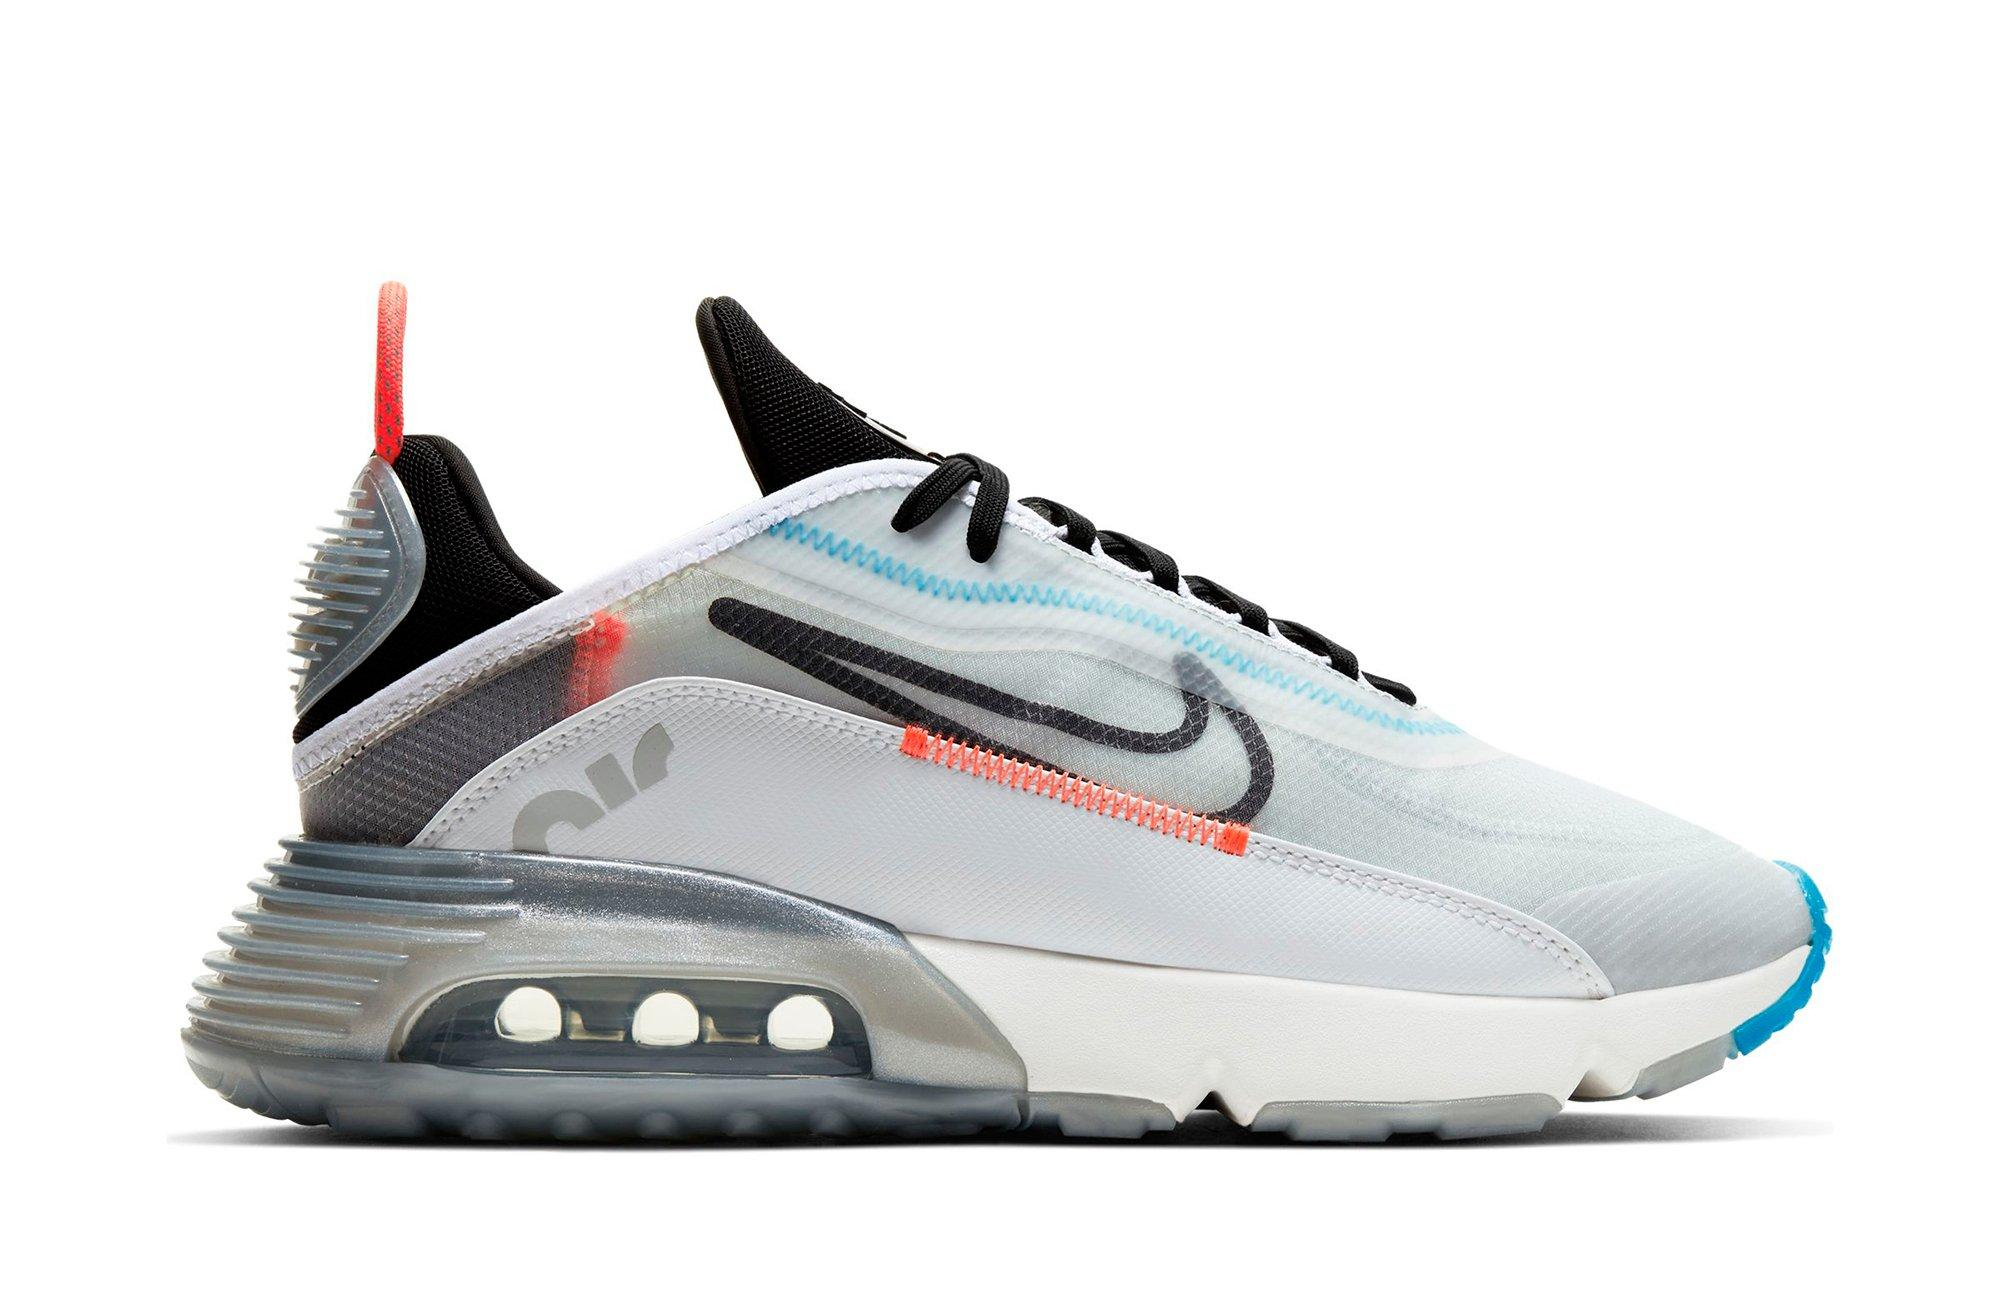 Nike Air Max 2090 Men's and Grade School Boy's Sneaker right.